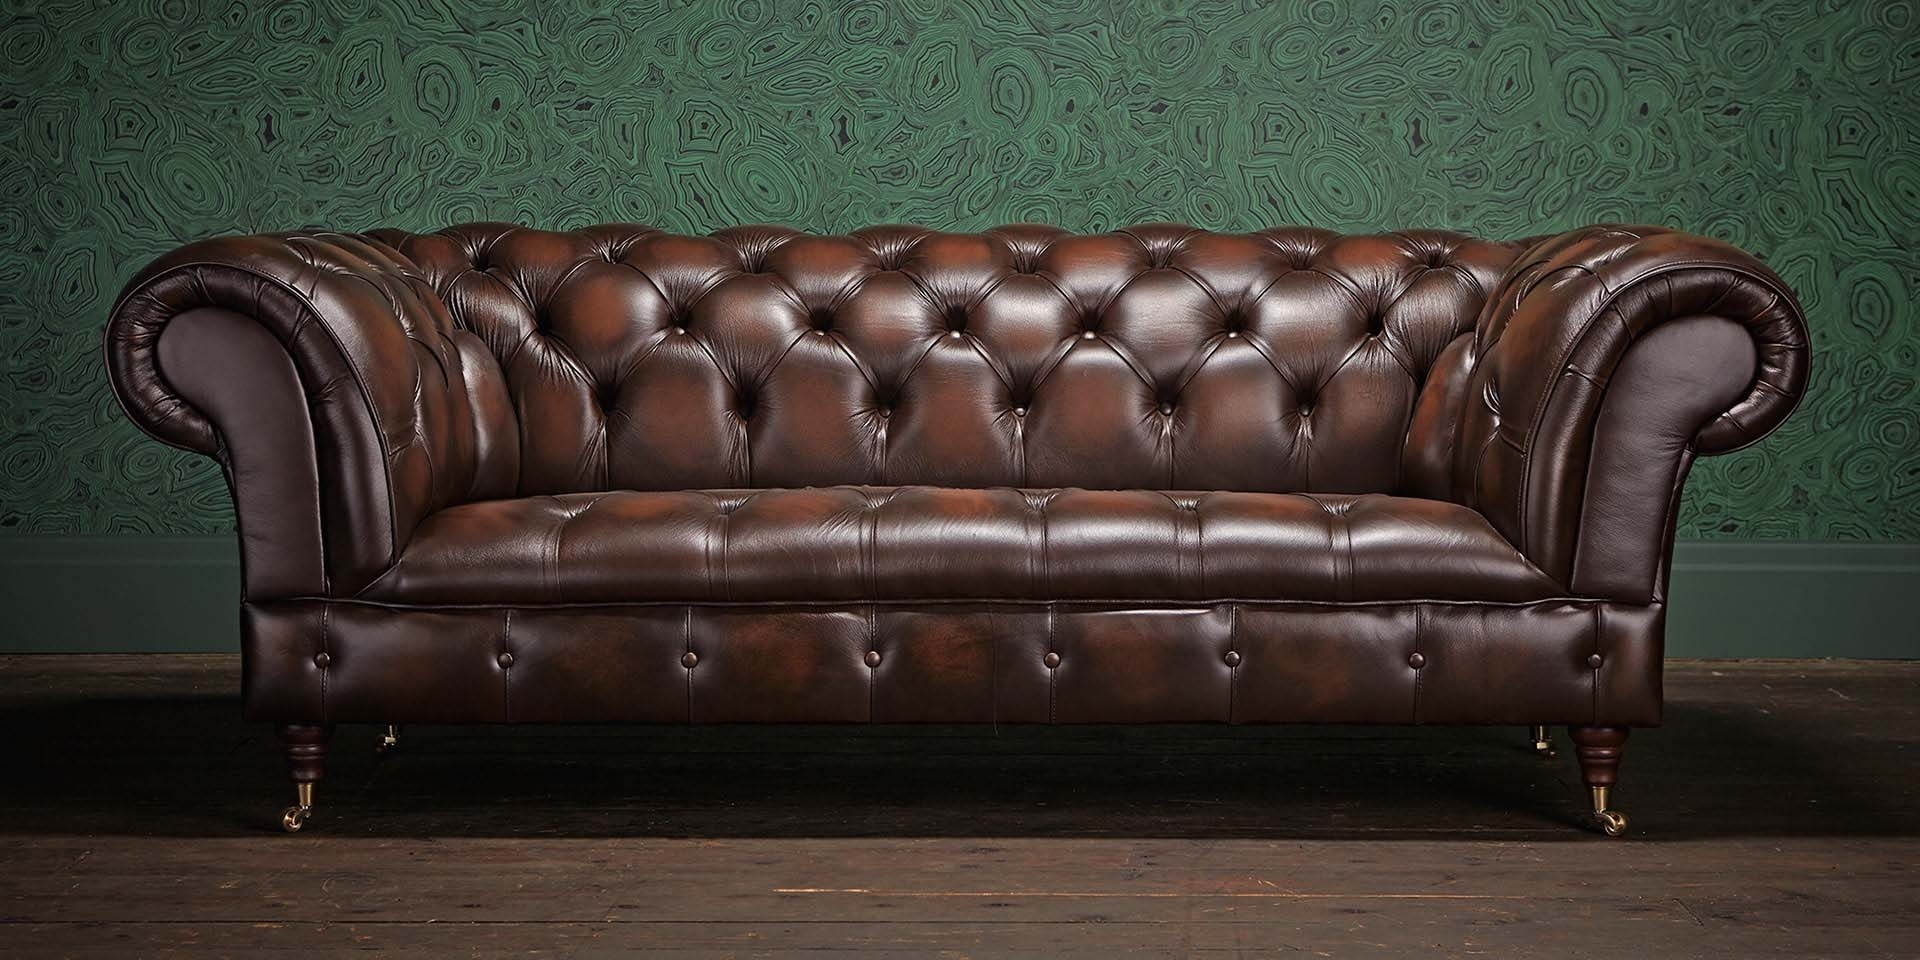 4 Vital Things To Look For In A Leather Chesterfield Sofa – Blogbeen Throughout Newest Chesterfield Sofas (Gallery 17 of 20)